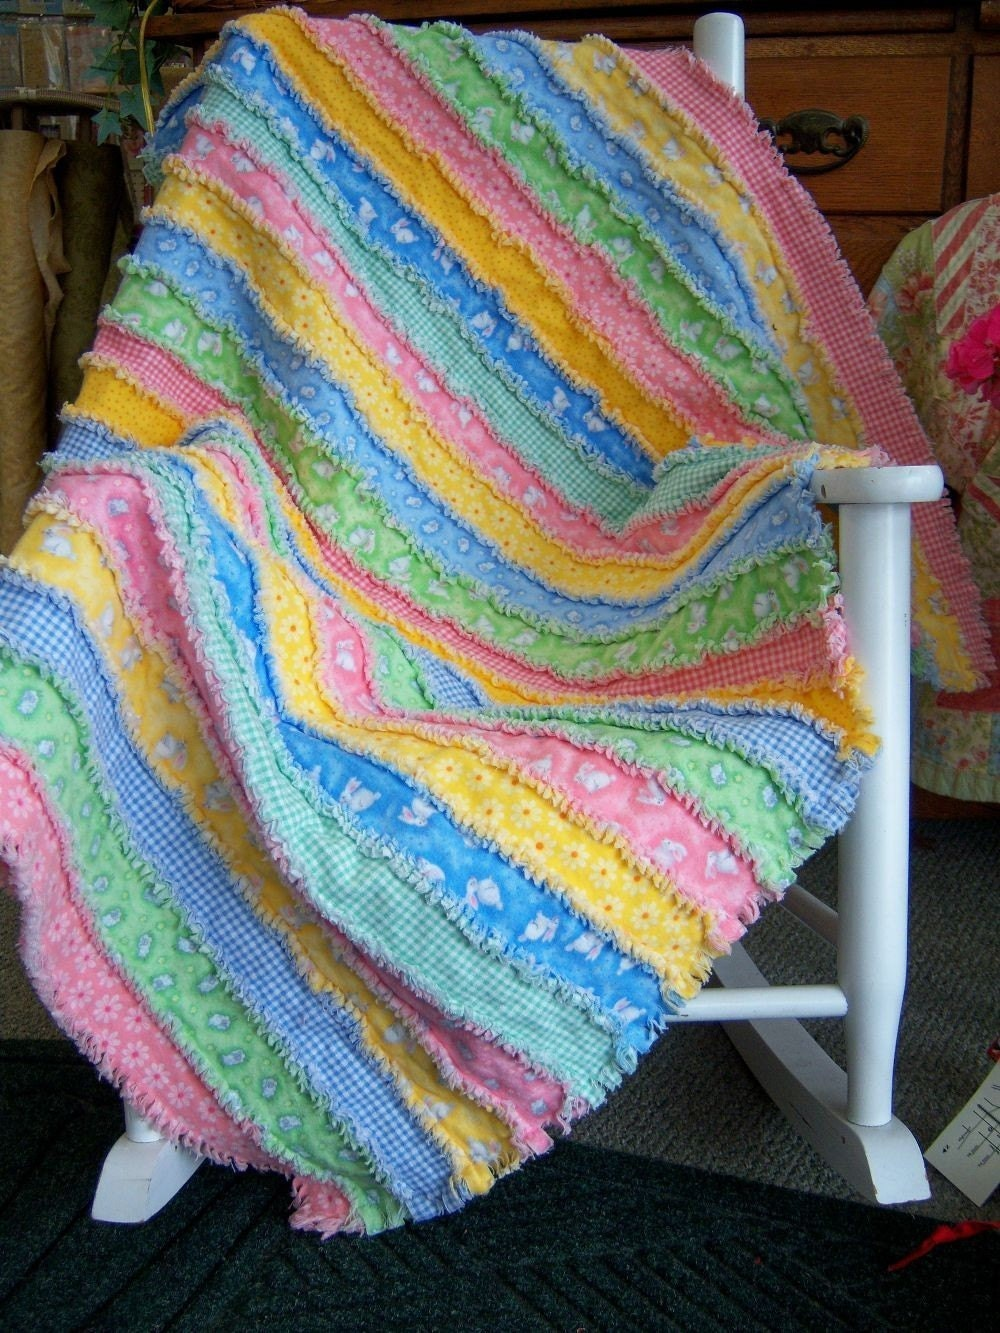 Easy As 1 2 3 Rag Quilt Pattern By Kriskreations2008 On Etsy